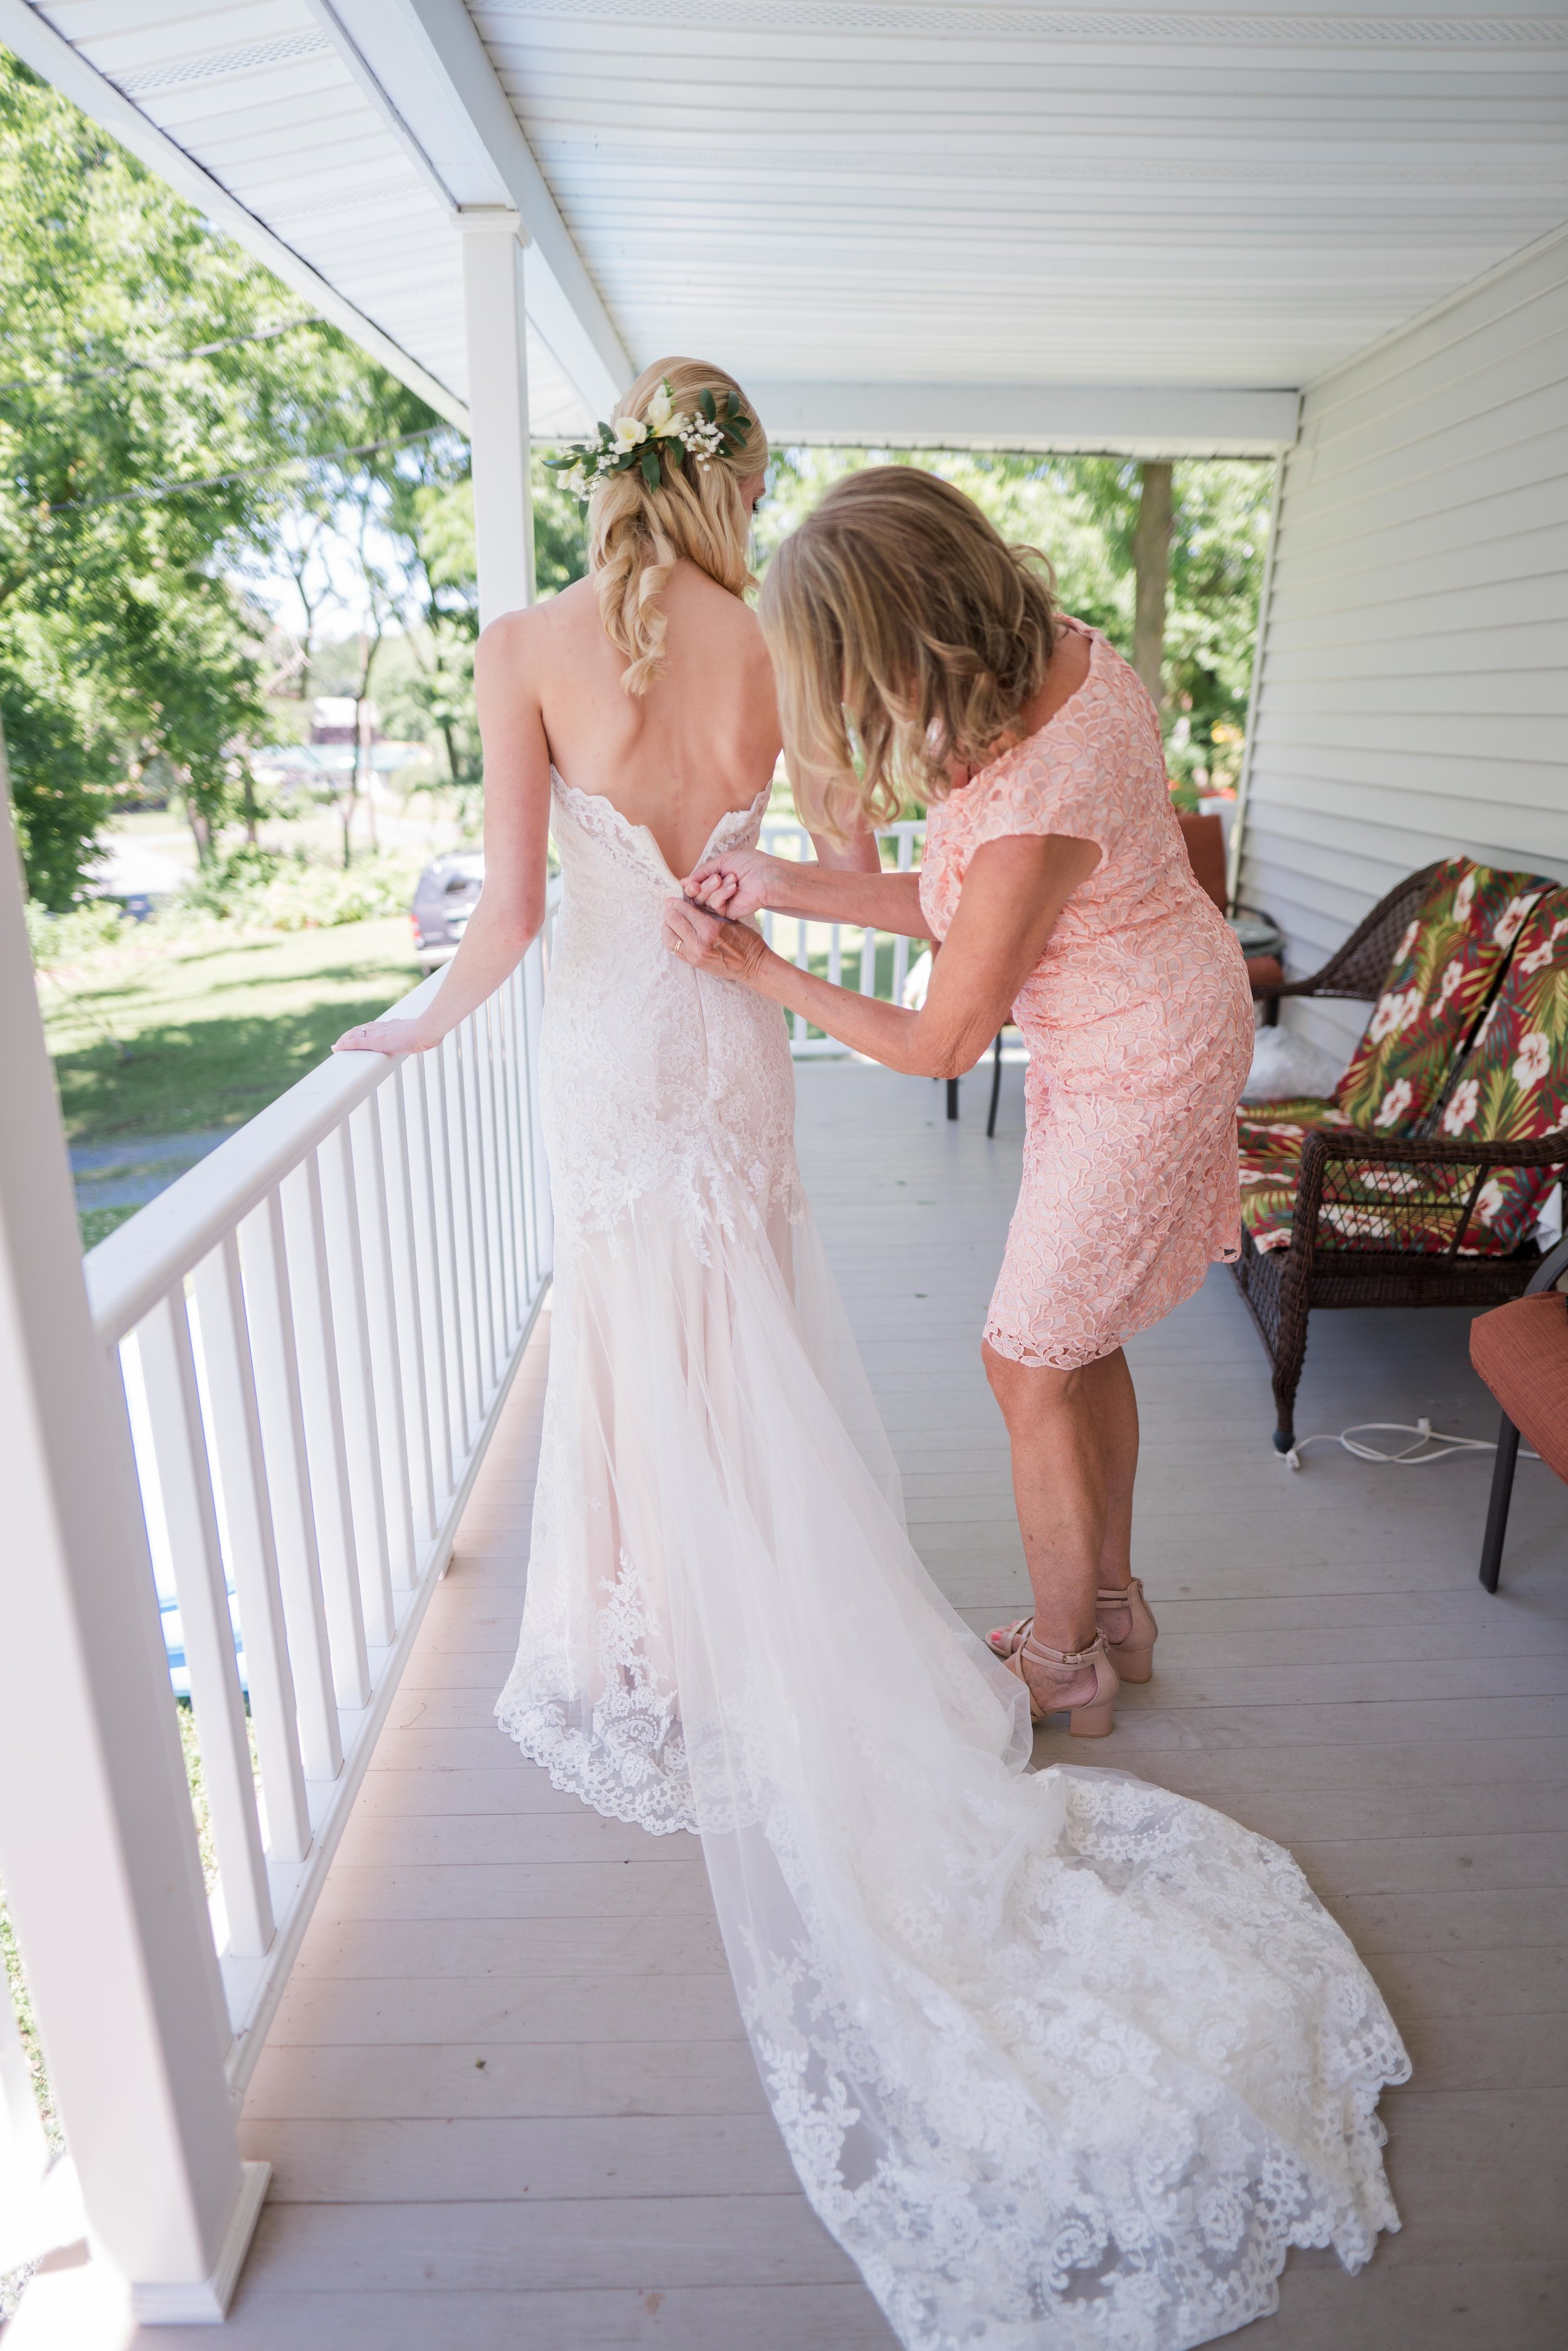 Wedding Photography at Wagner Vineyards Ginny Lee Cafe Finger Lakes by Stefan Ludwig Photography-11.jpg